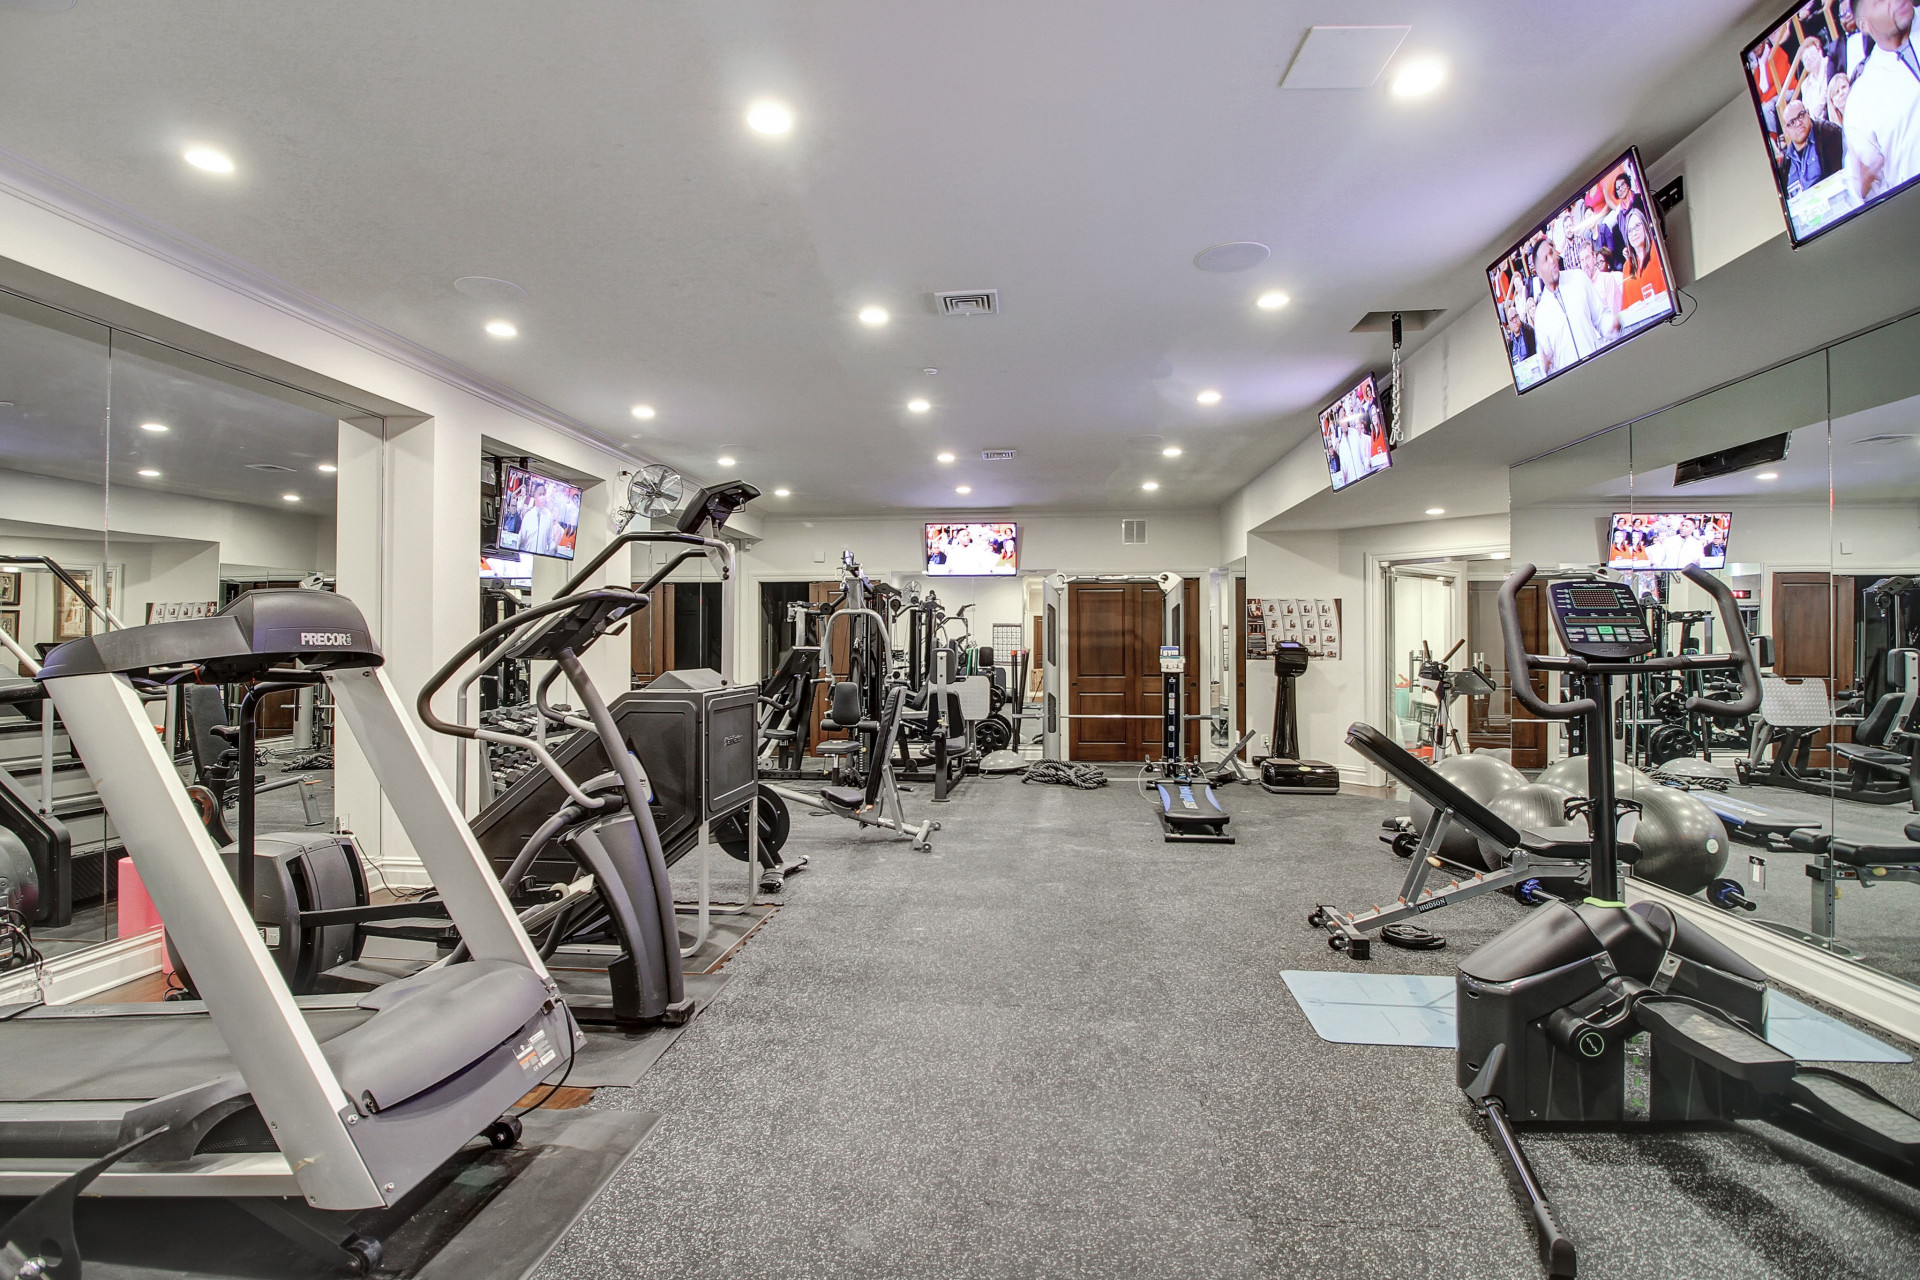 29 Chestnut Street Exercise Room